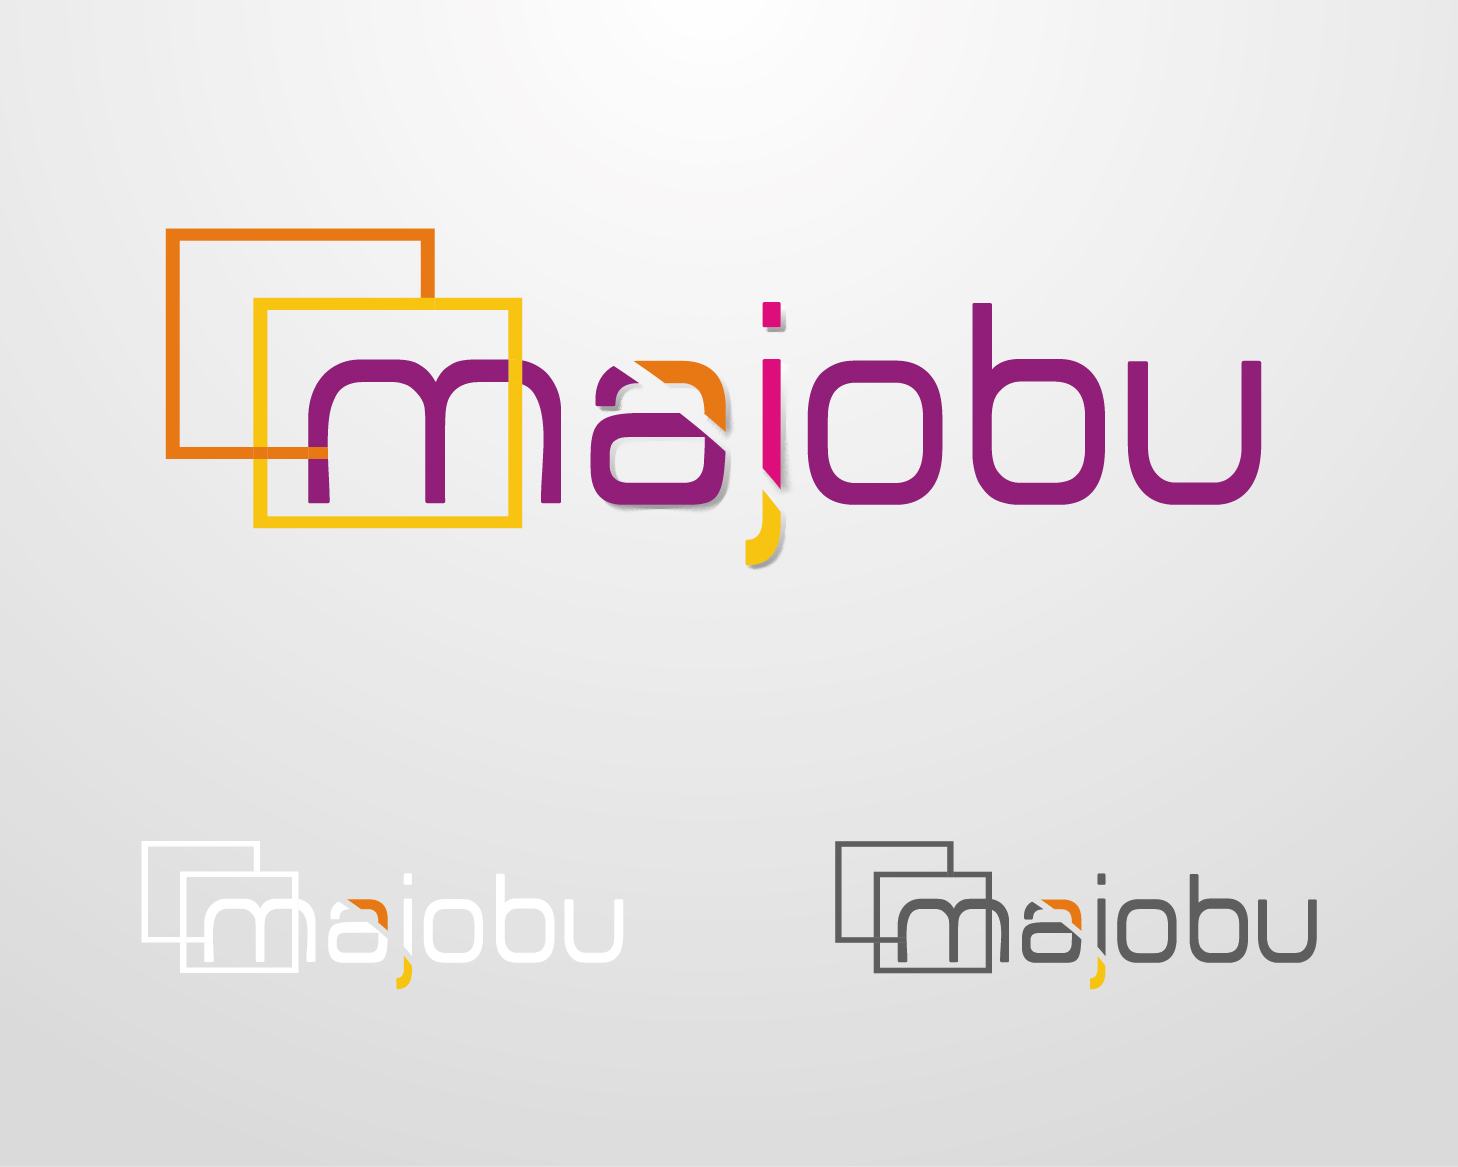 Logo Design by VENTSISLAV KOVACHEV - Entry No. 87 in the Logo Design Contest Inspiring Logo Design for Majobu.